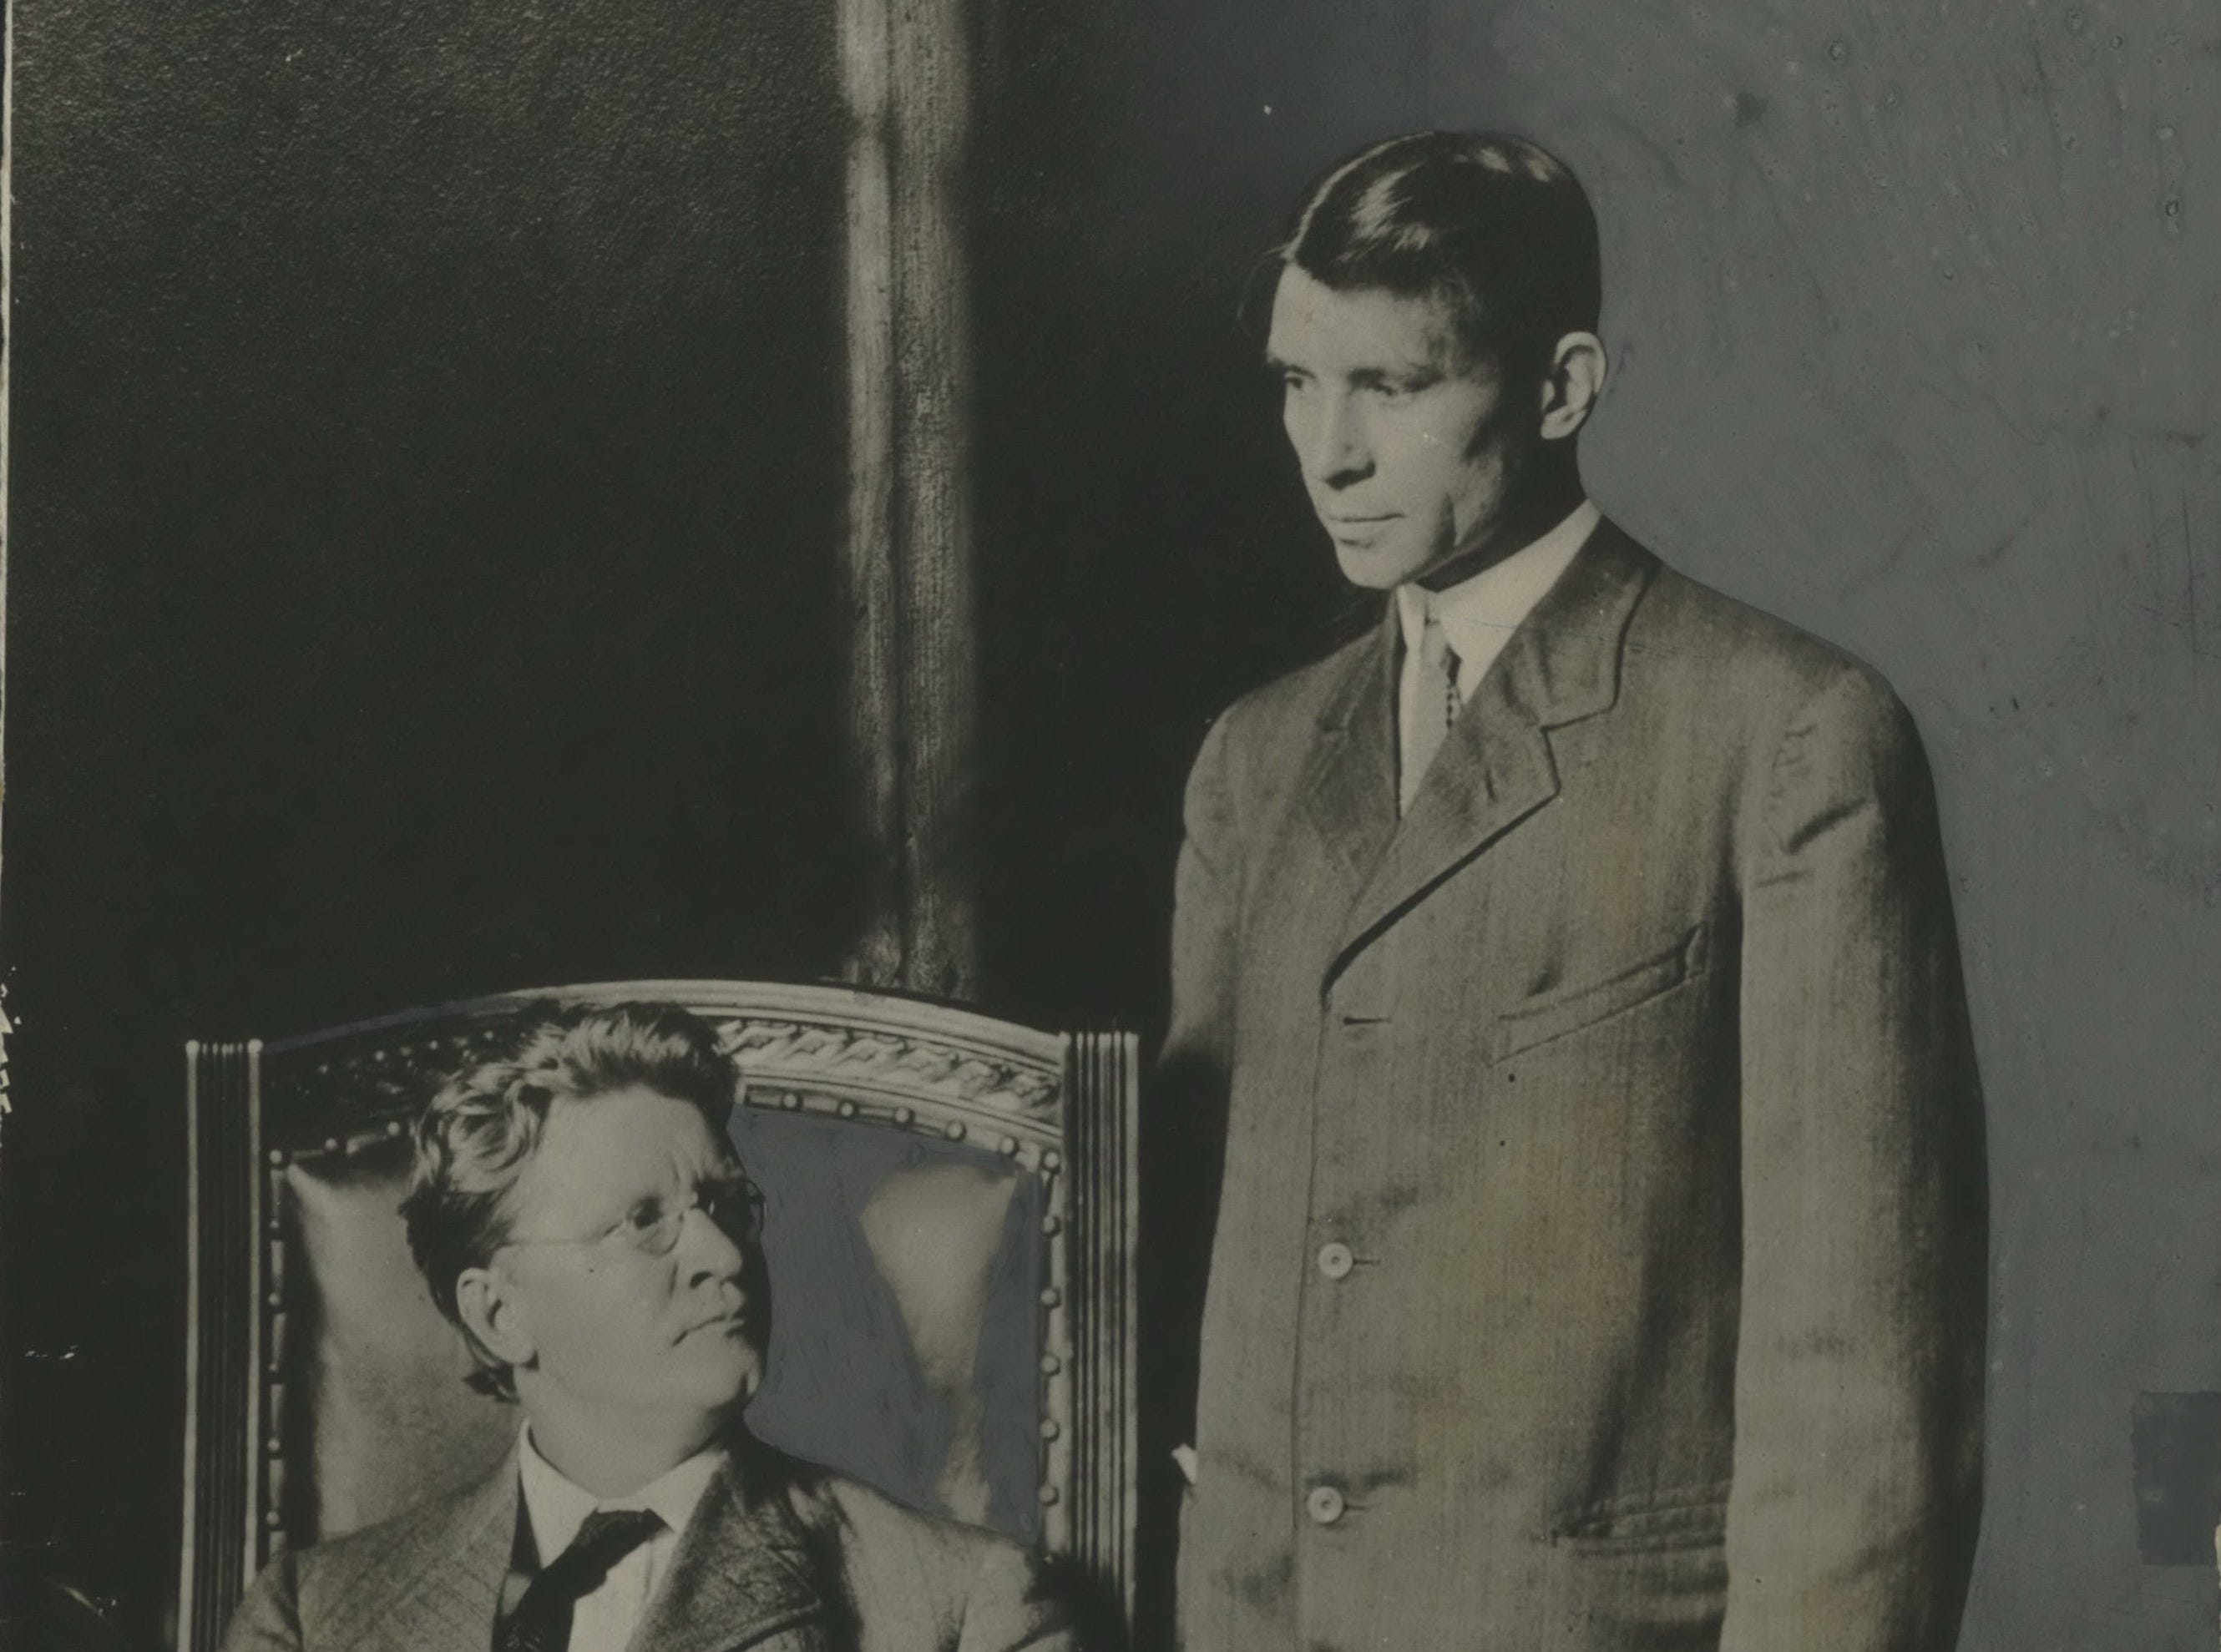 Carl Sandburg is shown in 1910 standing beside Emil Seidel, Milwaukee's first Socialist mayor. After Seidel's victory, Sandburg worked for him.